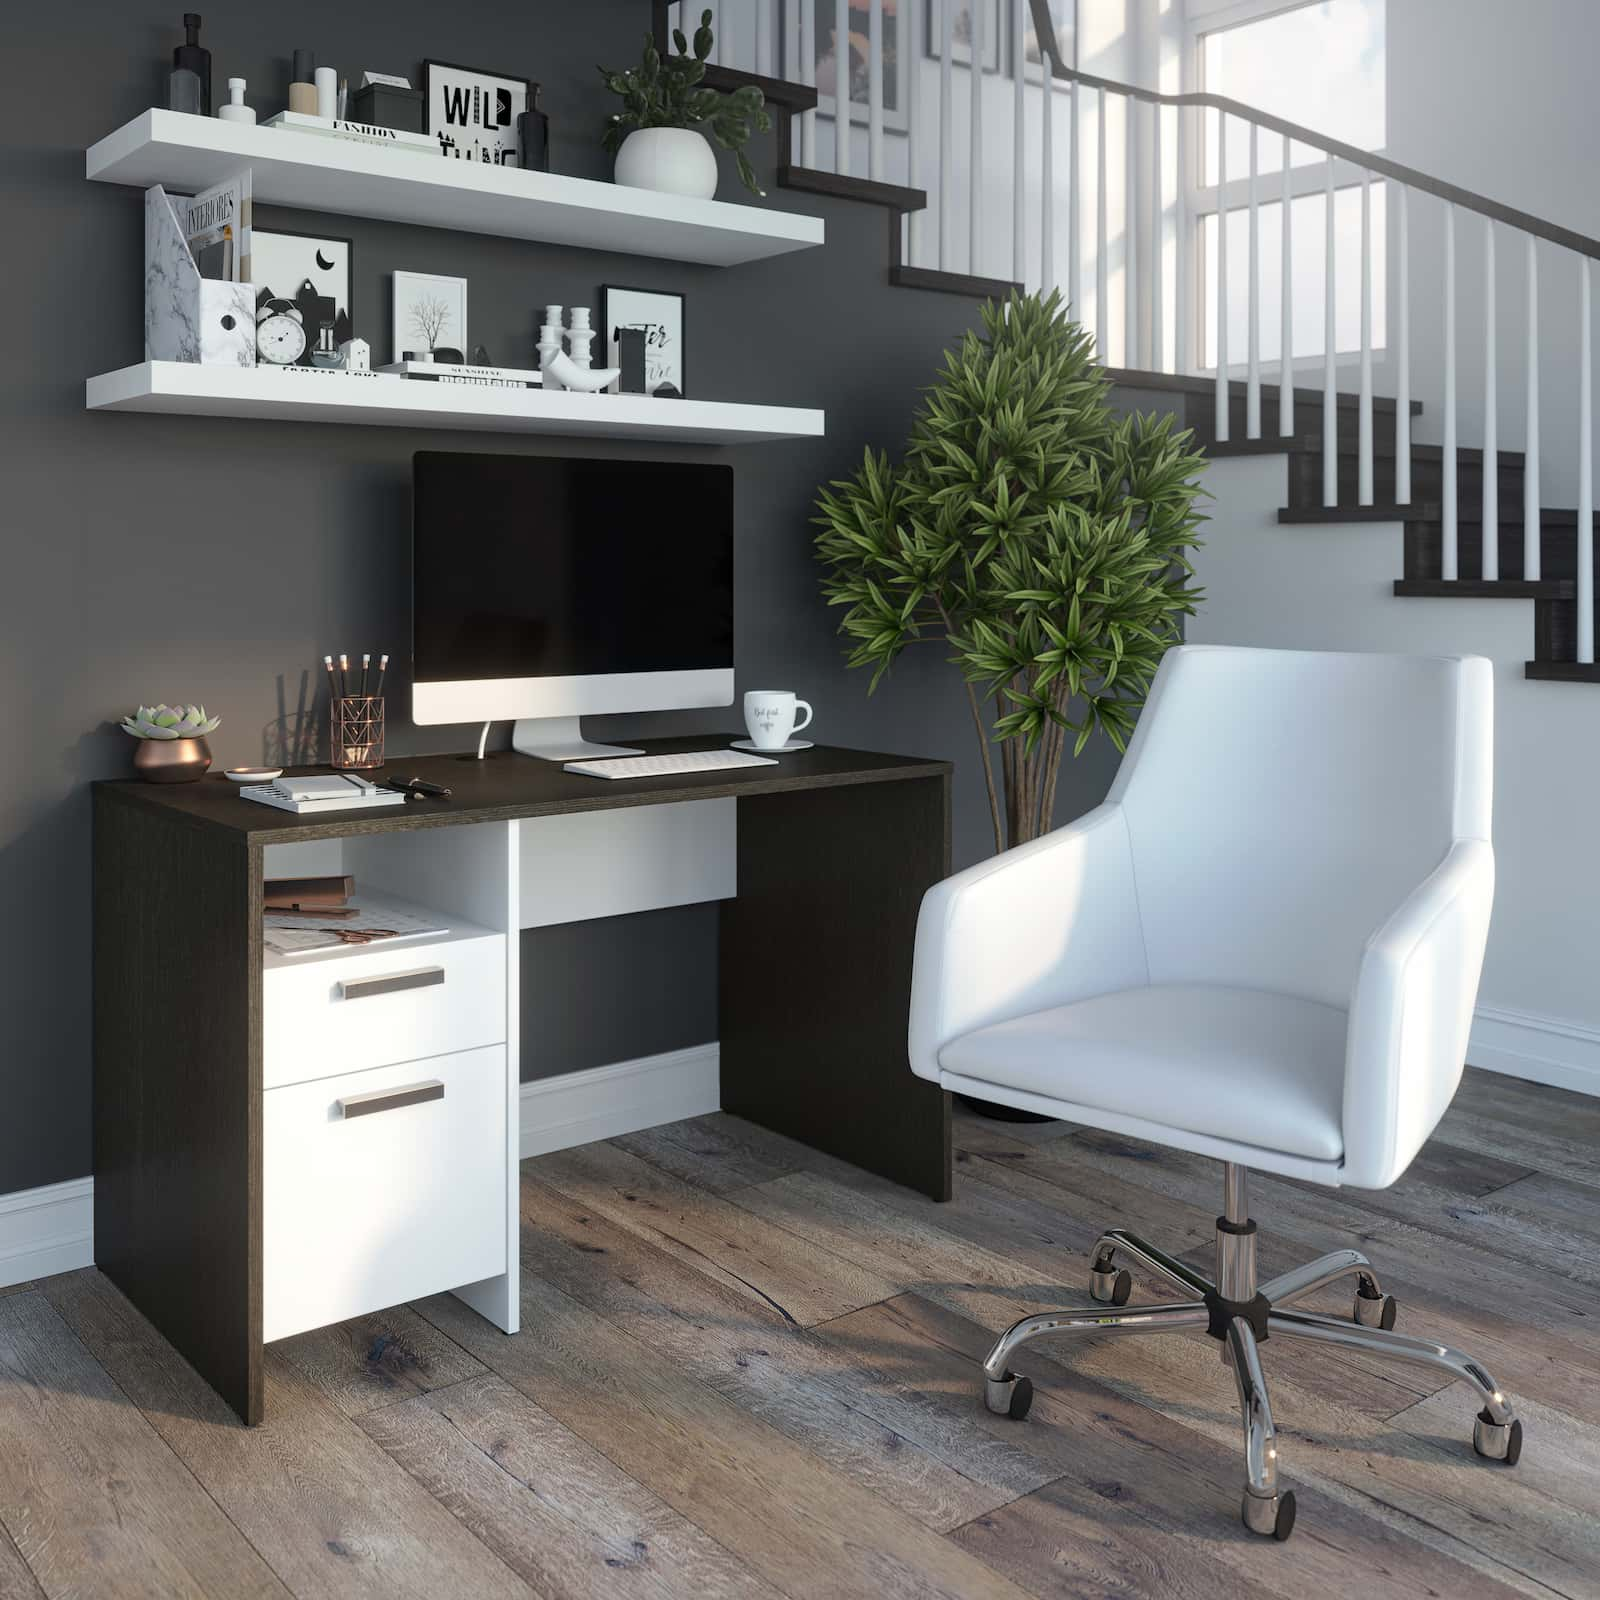 small home office desks with shelves on the wall over the desk. white swivel chair. big potted plant on the right. staircase on the right.